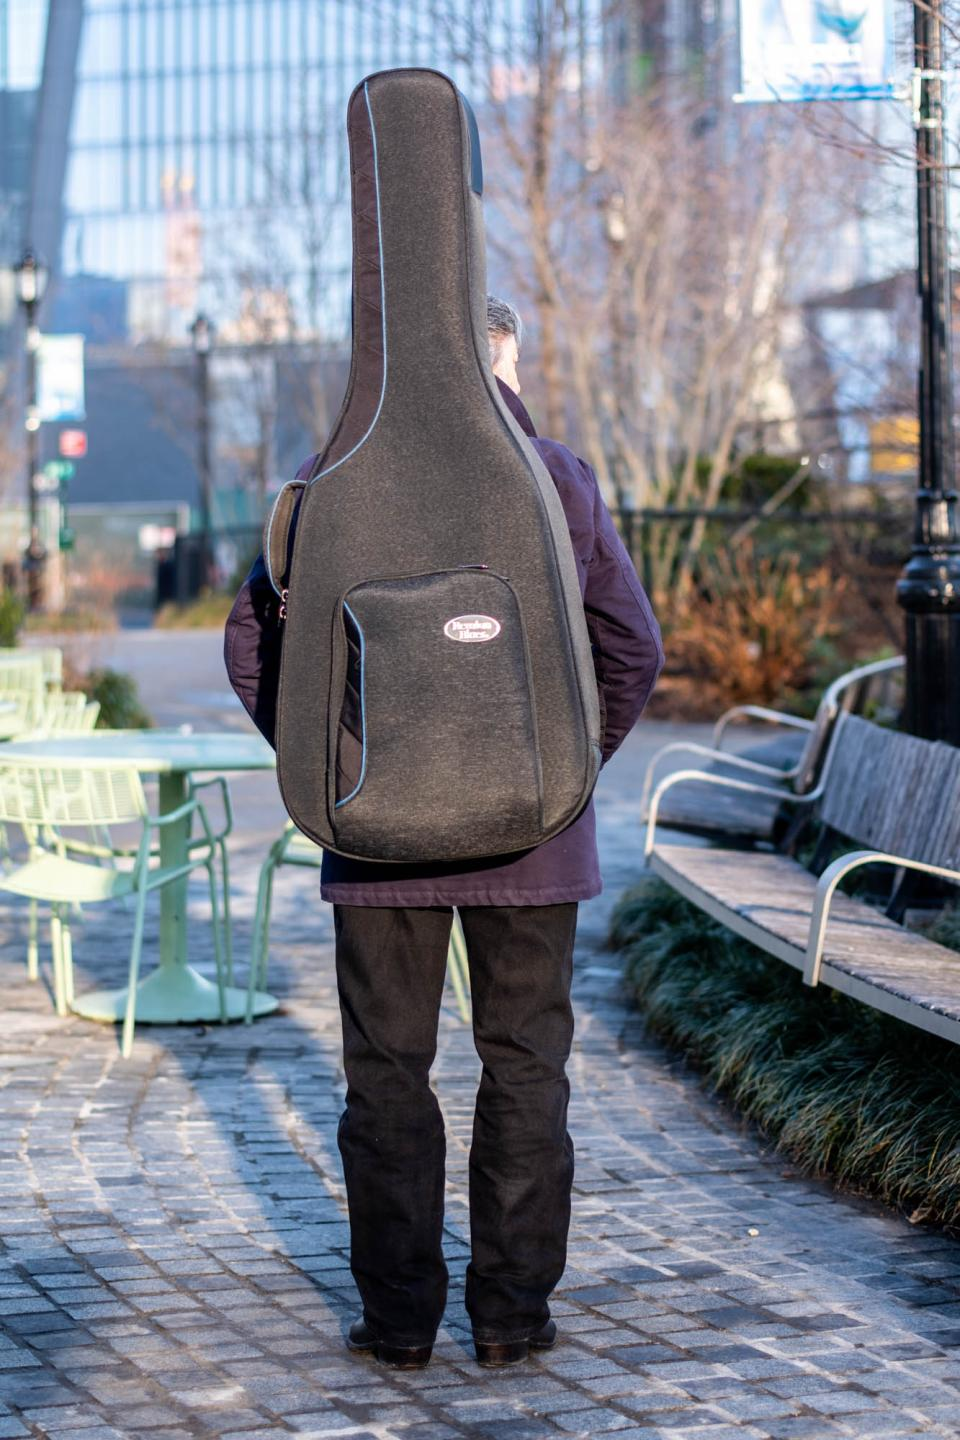 For packing your guitar around town, nothing beats the RB Continental Voyager.